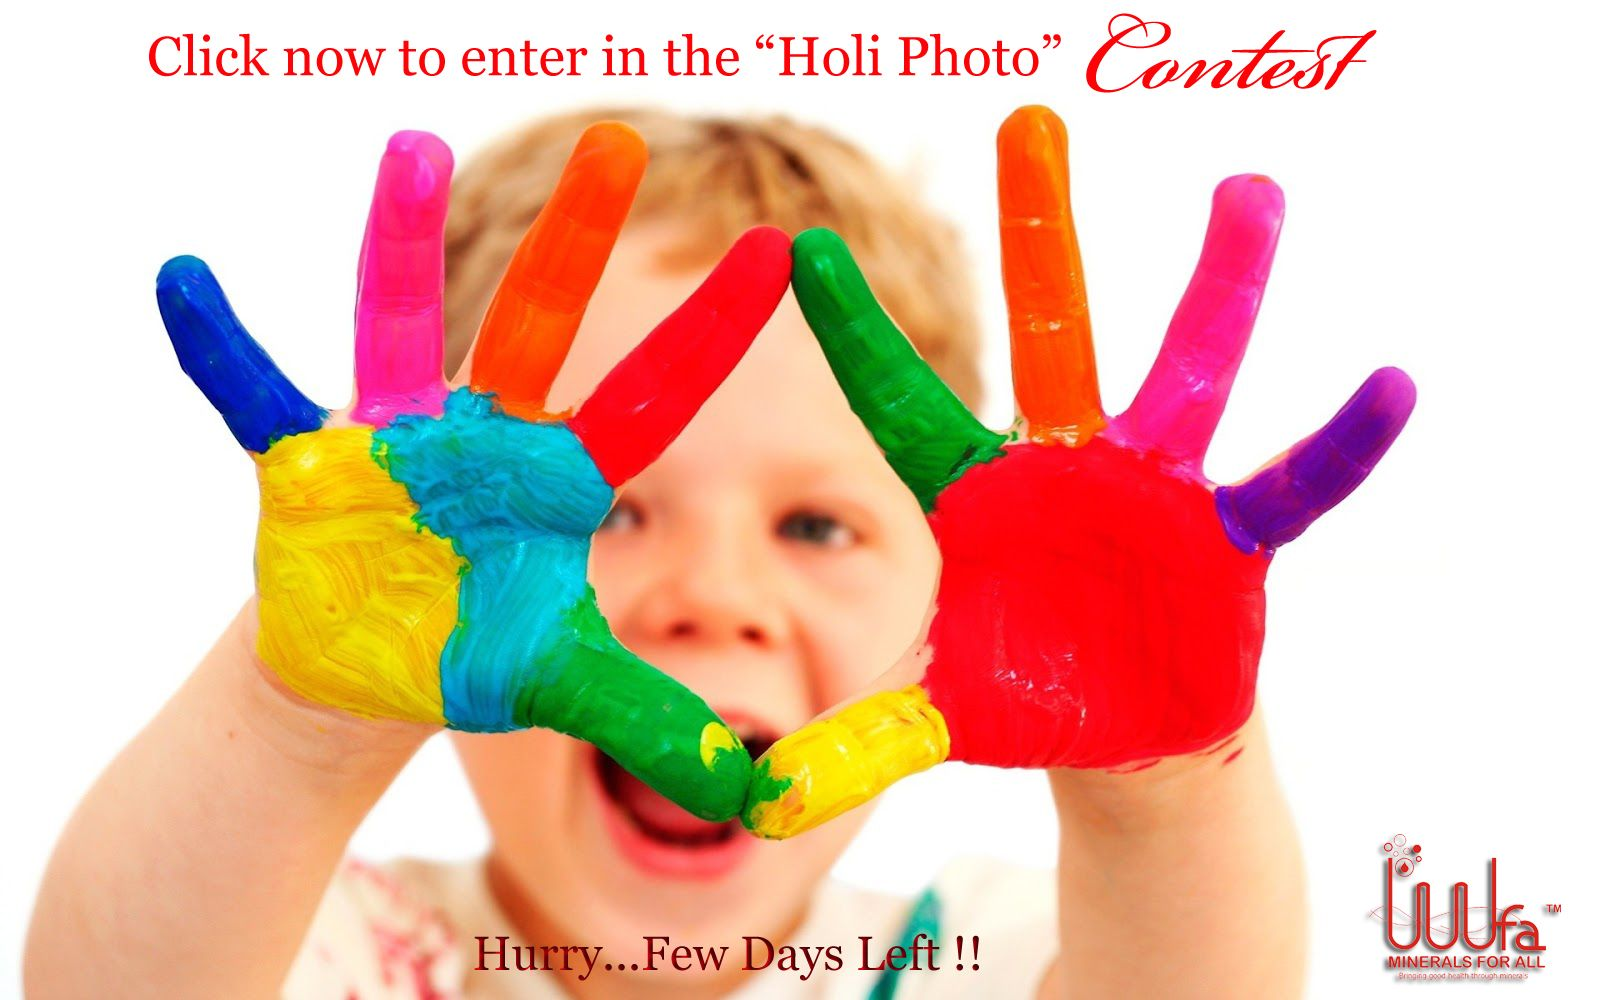 Hurry Up Guyz.. Participate in the Holi Contest #HOLICONTEST